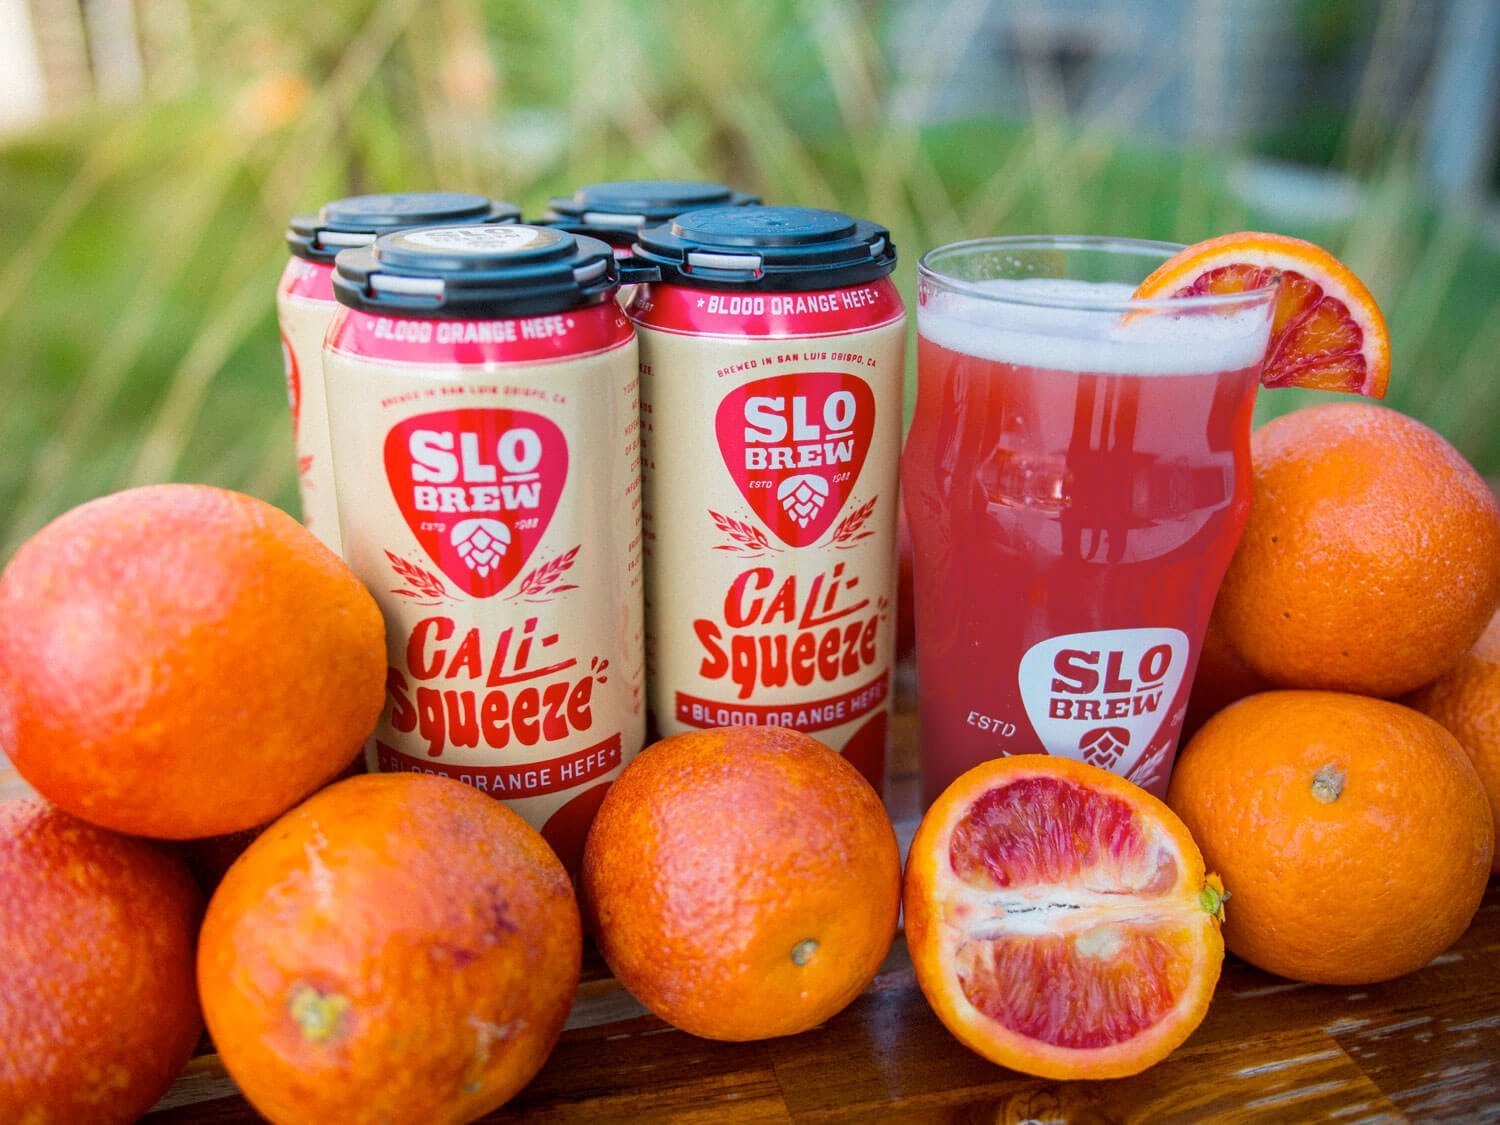 The Cali-Squeeze line of Hefeweizens features infused fruit purees and is available in Blood Orange, Mango, and Tropical P.O.G.